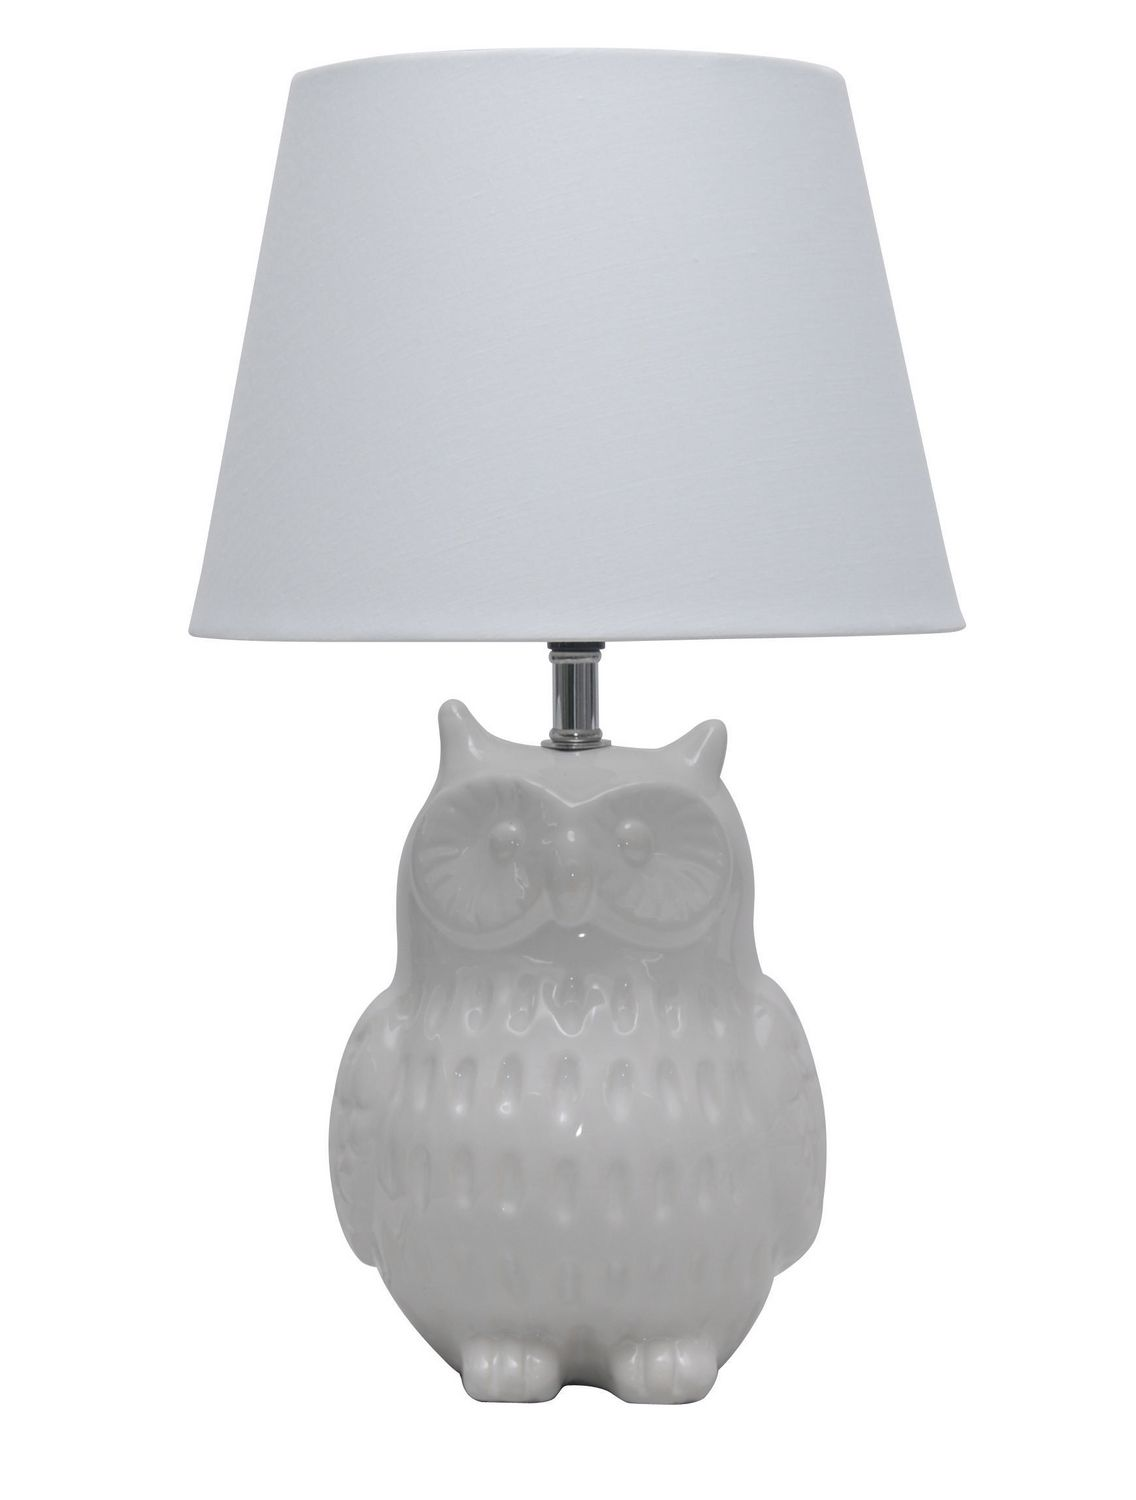 Ceramic Owl Table Lamp White Walmart Canada - Bedroom lamps at walmart